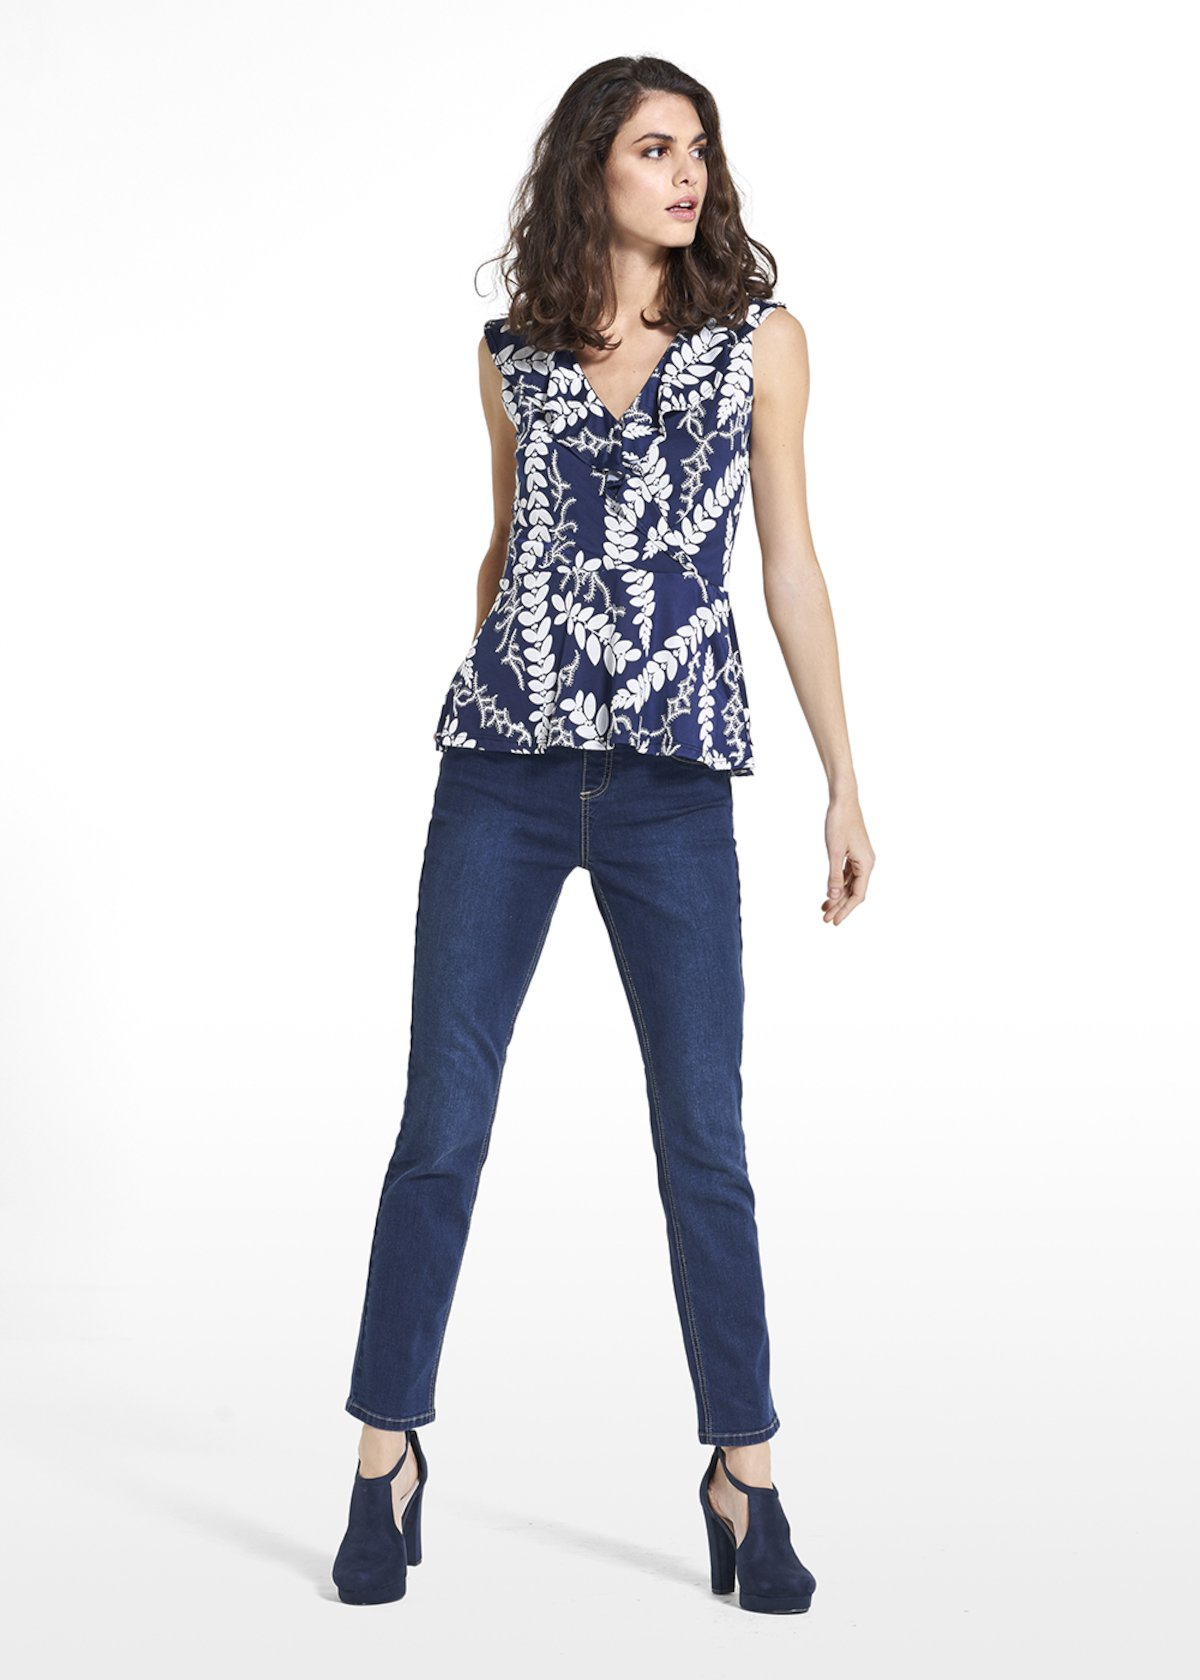 Top Trixy in jersey with rouces on the neckline - Blue / White Fantasia - Woman